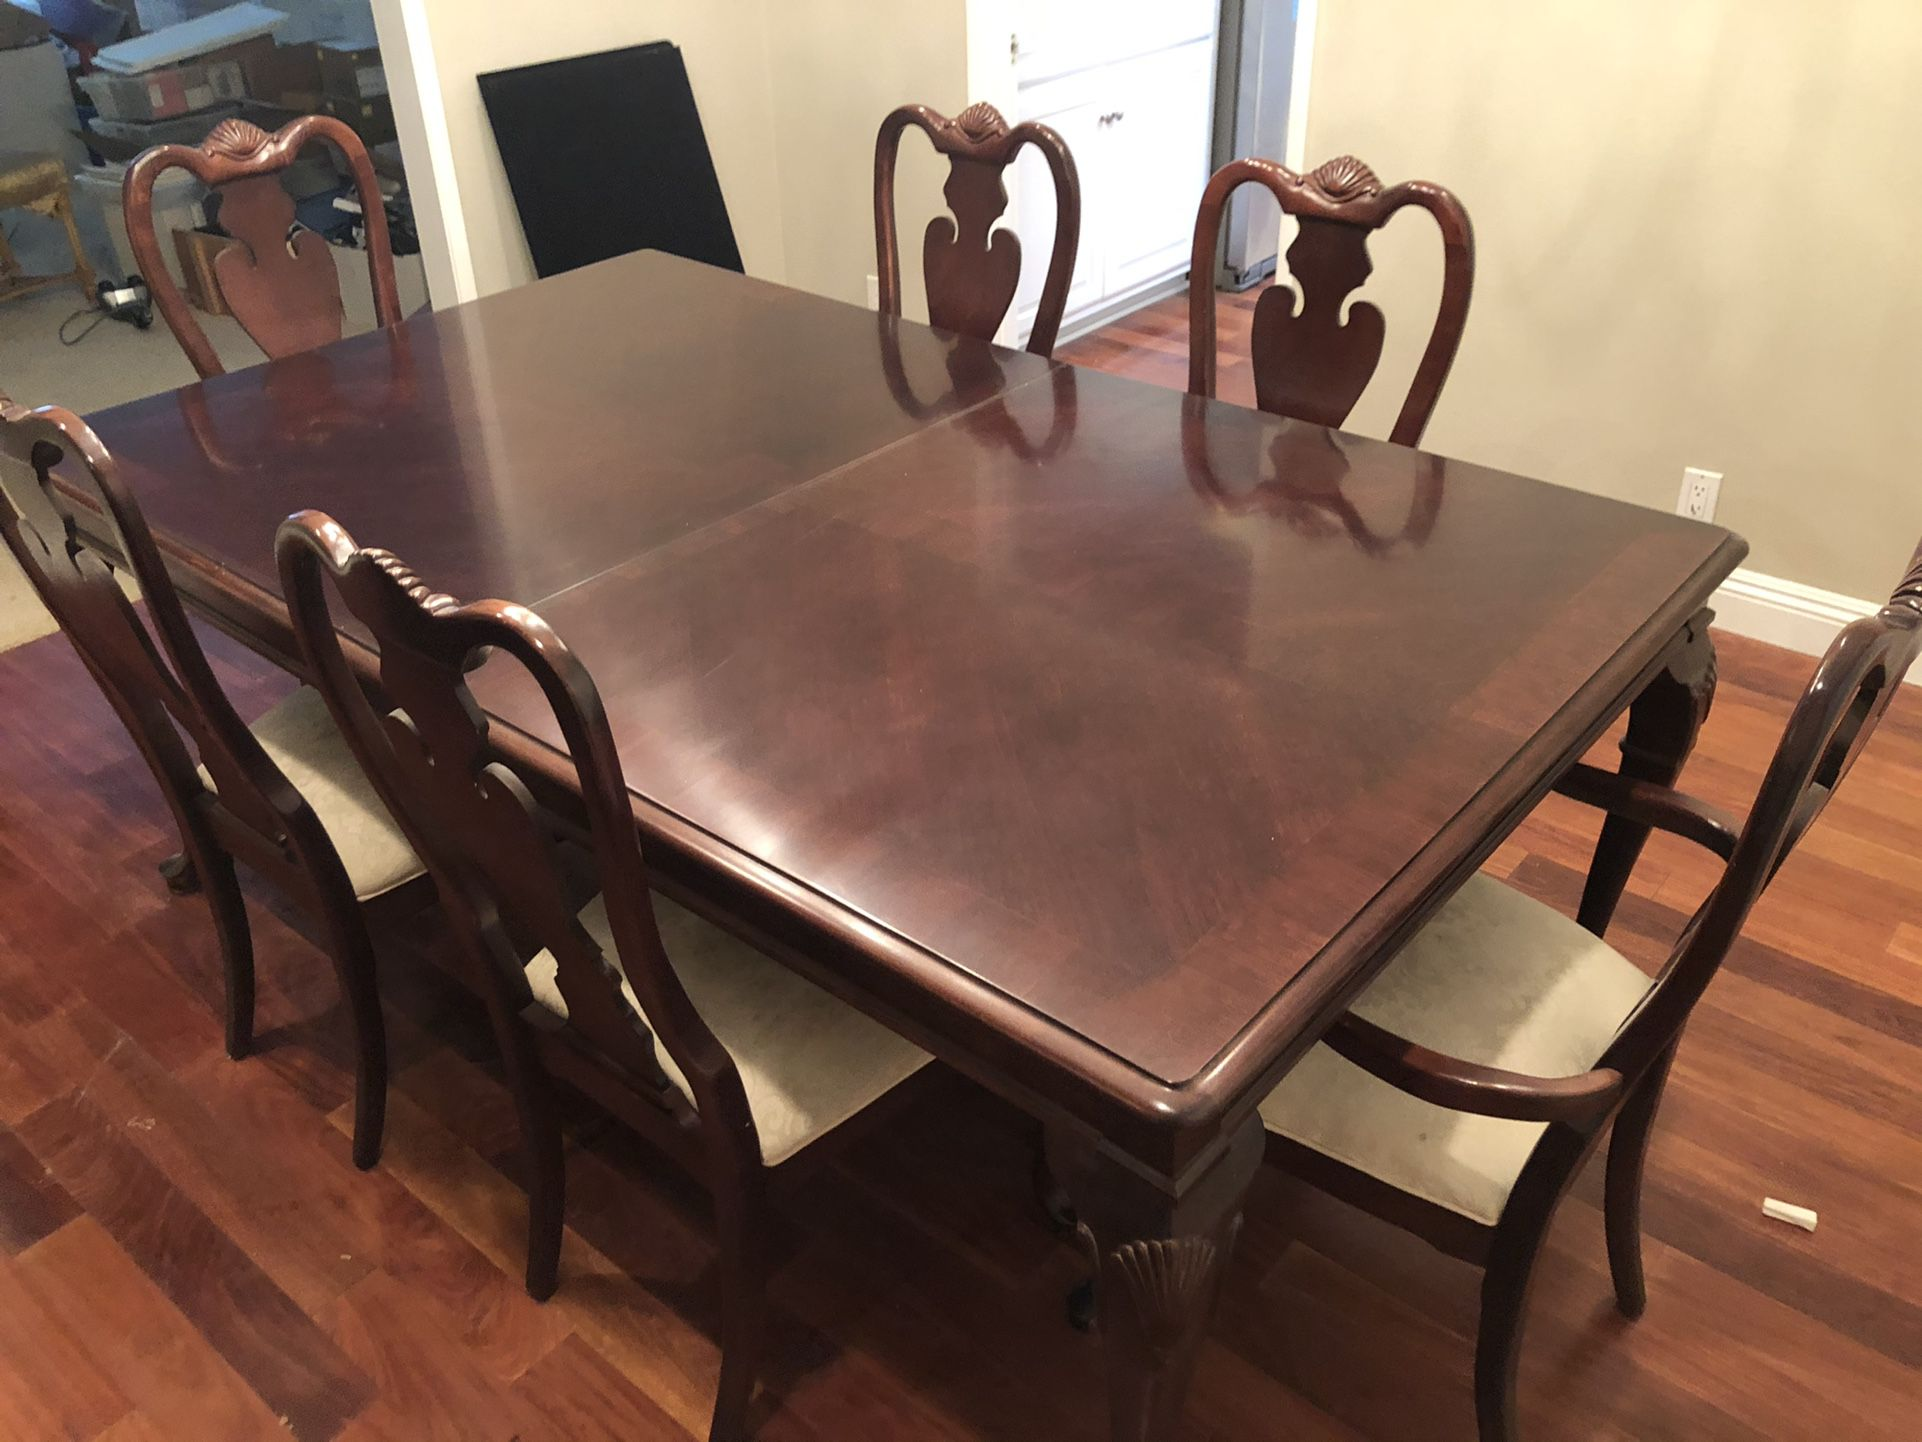 Hutch dining room table, chairs, and china cabinet